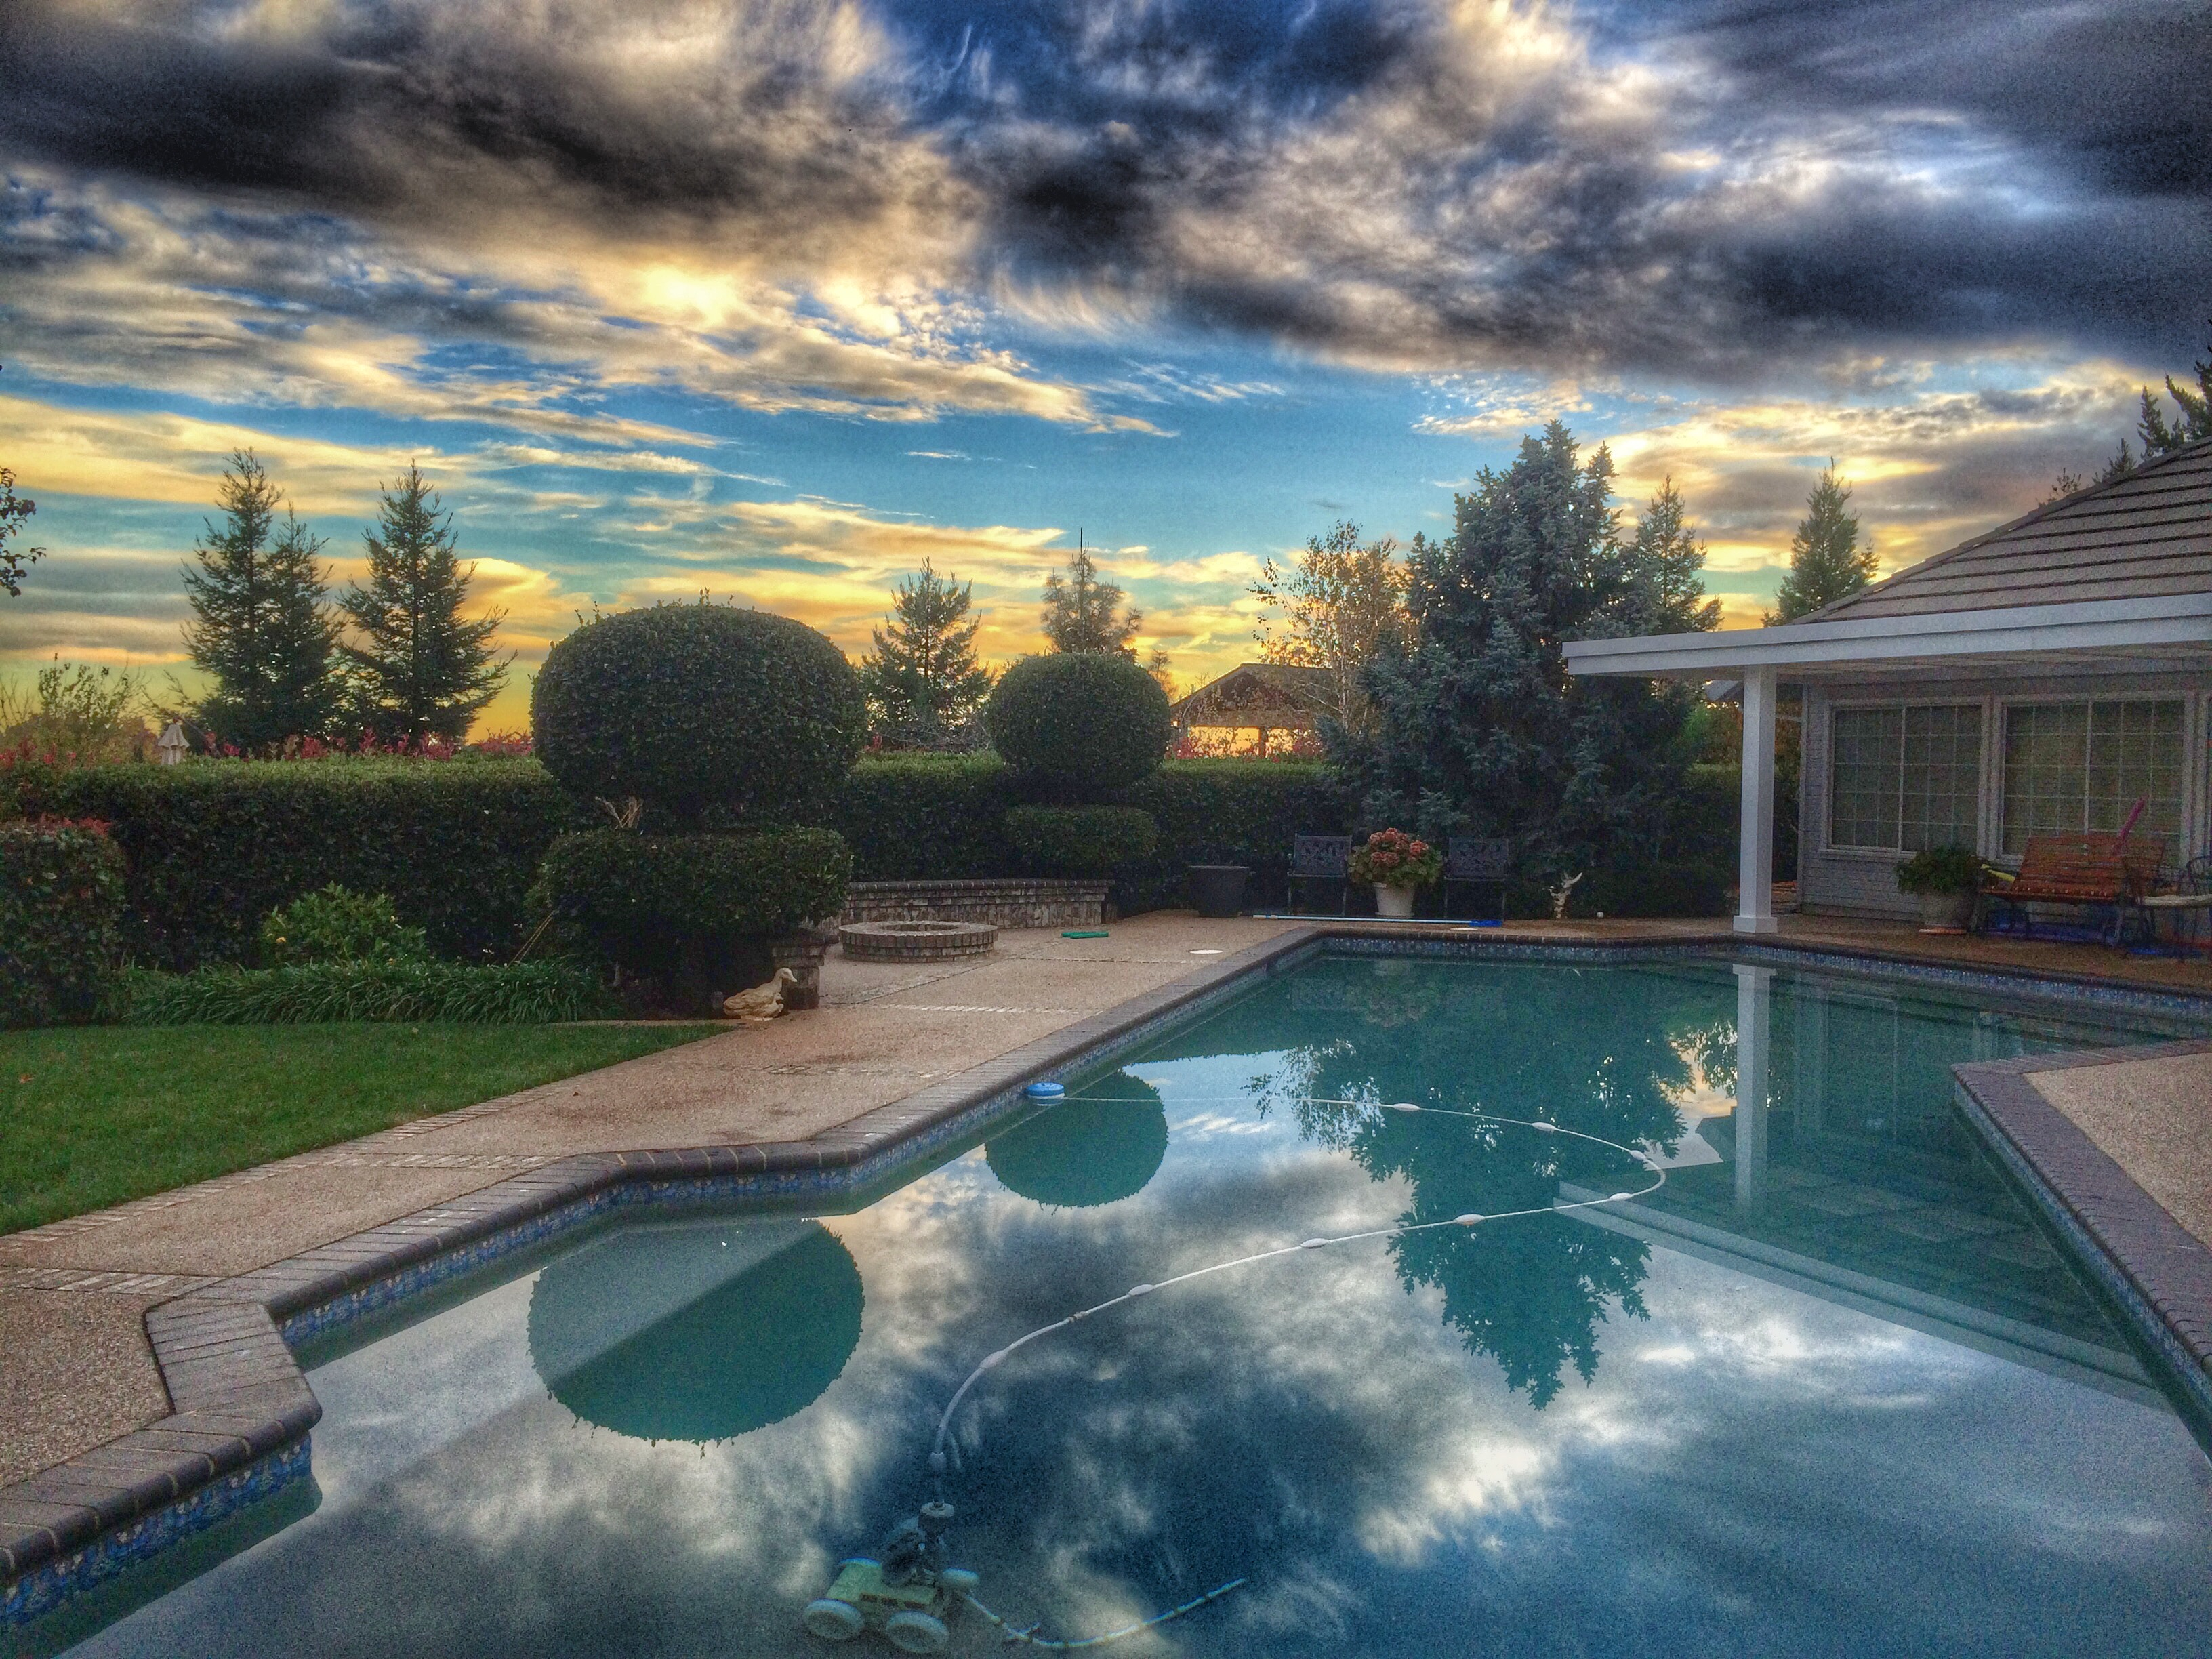 Backyard Pool Beautiful Sunset